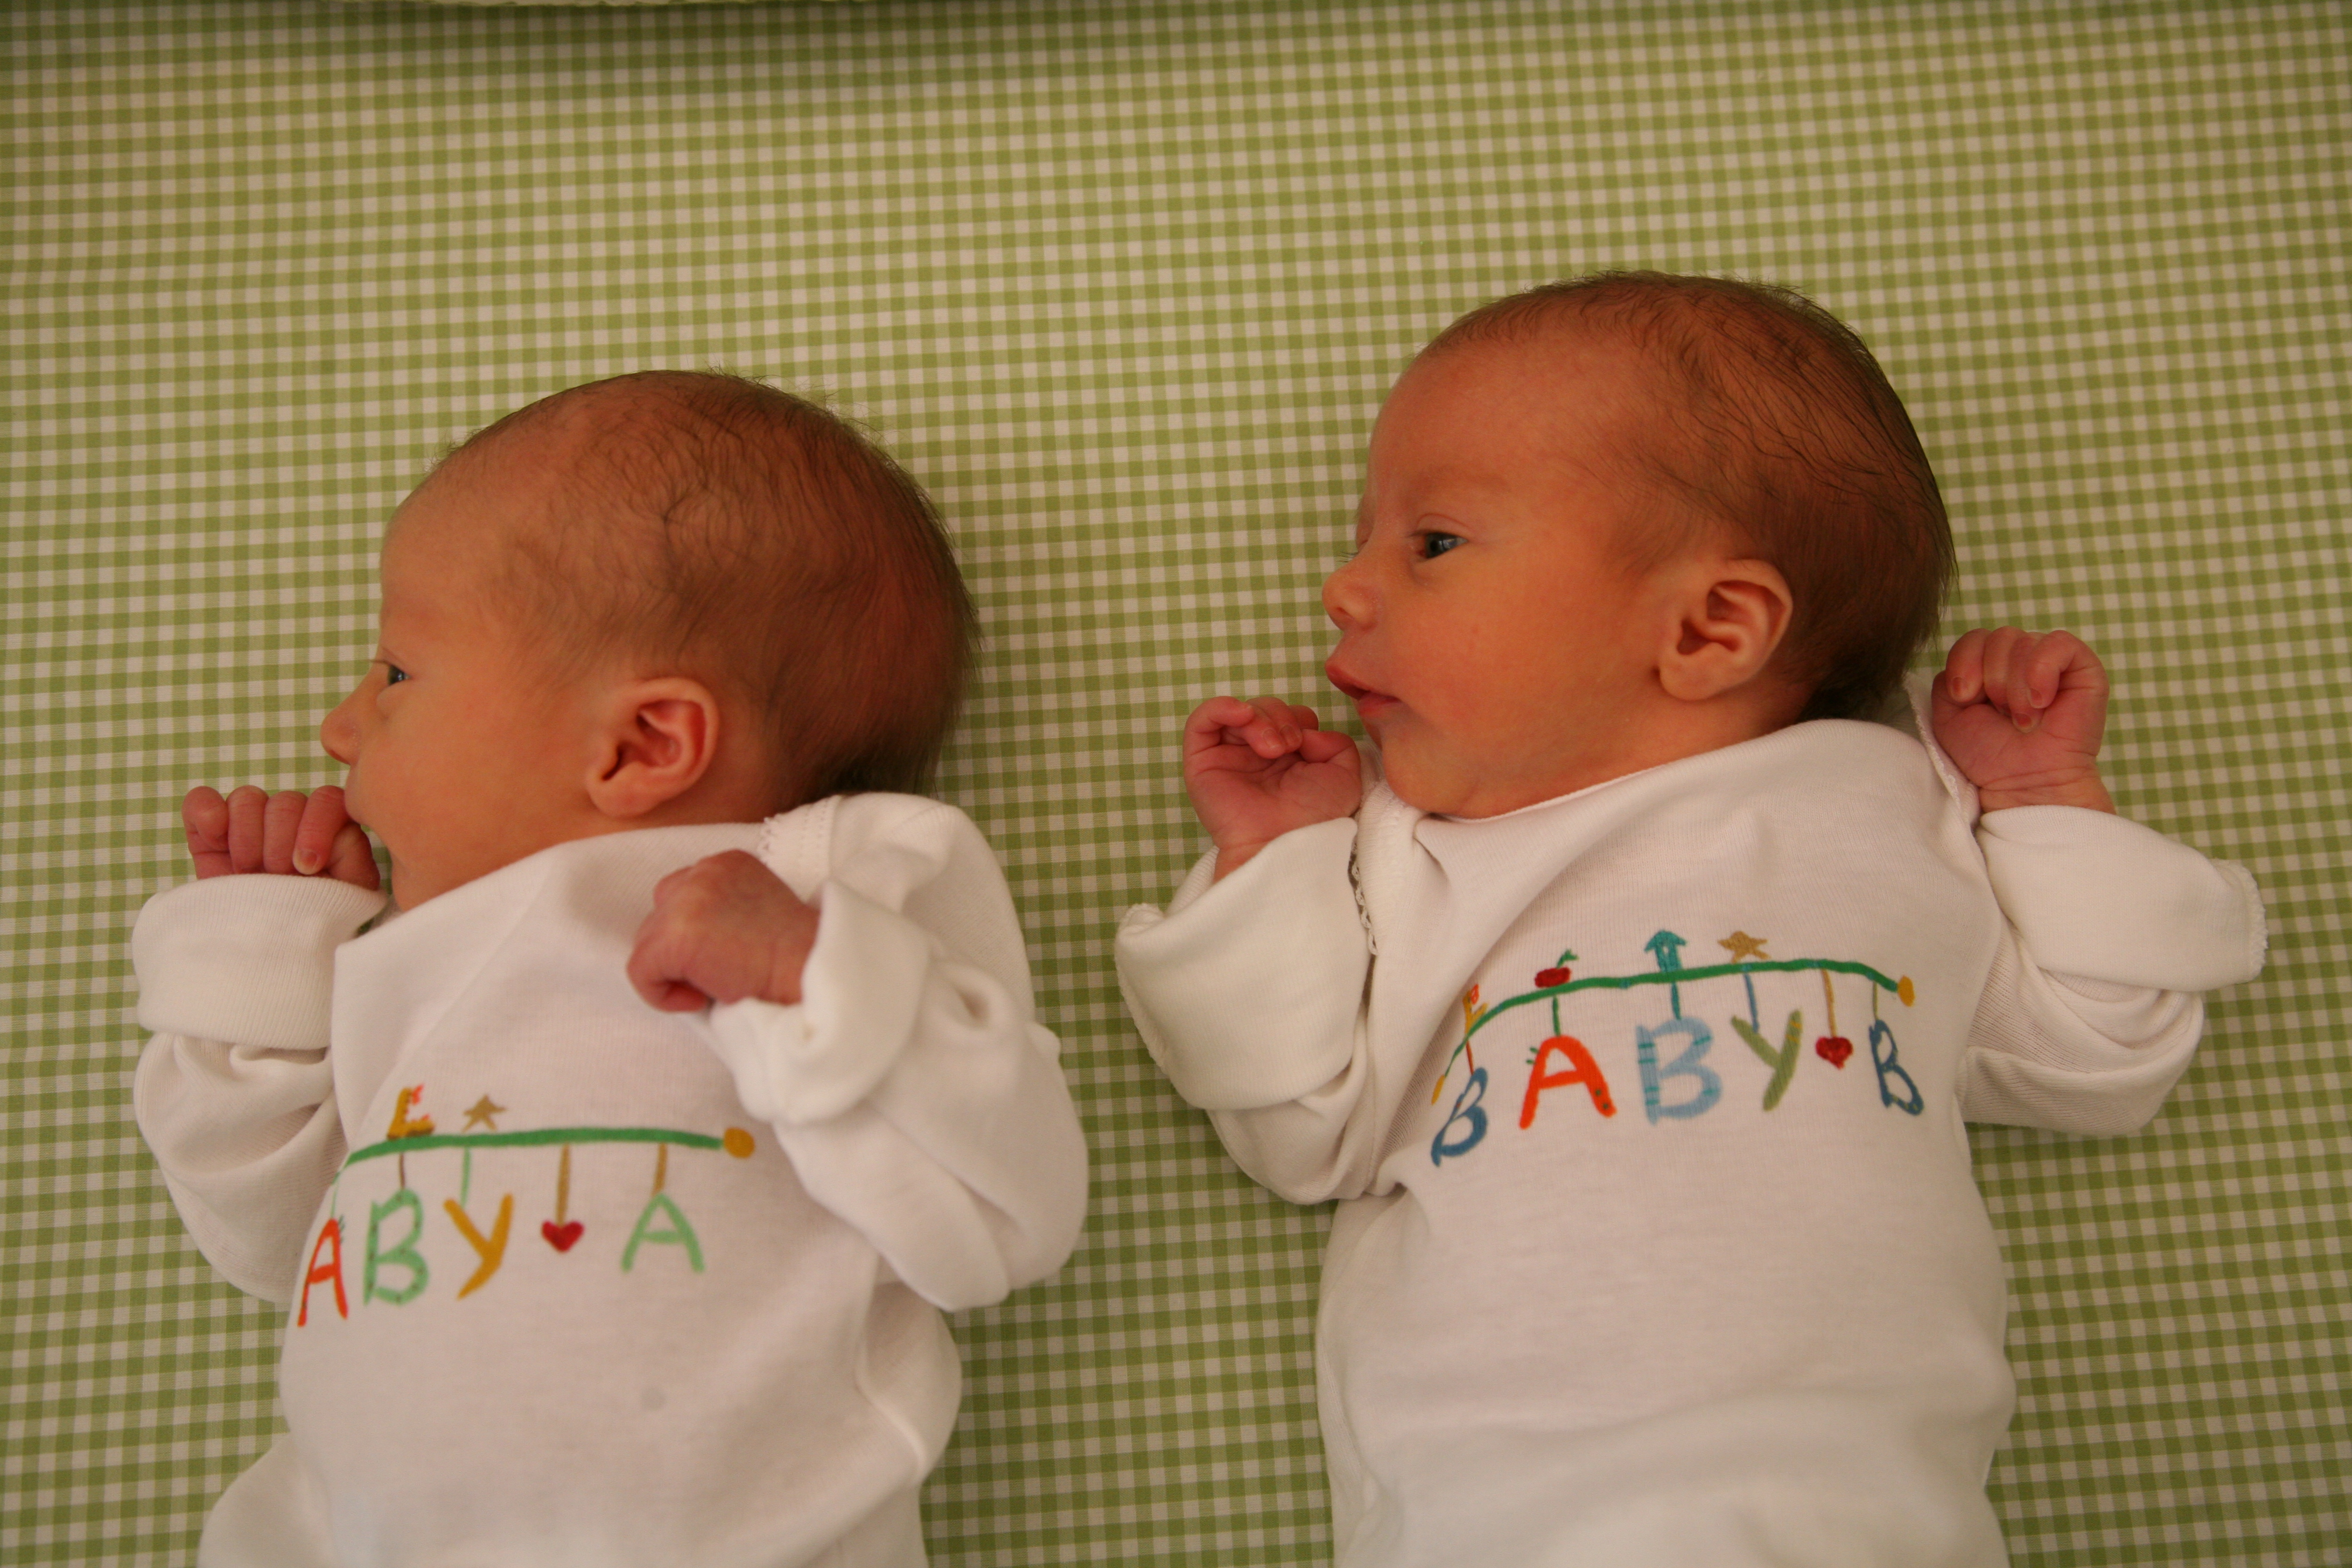 Not identical twins doing everything together must see 5